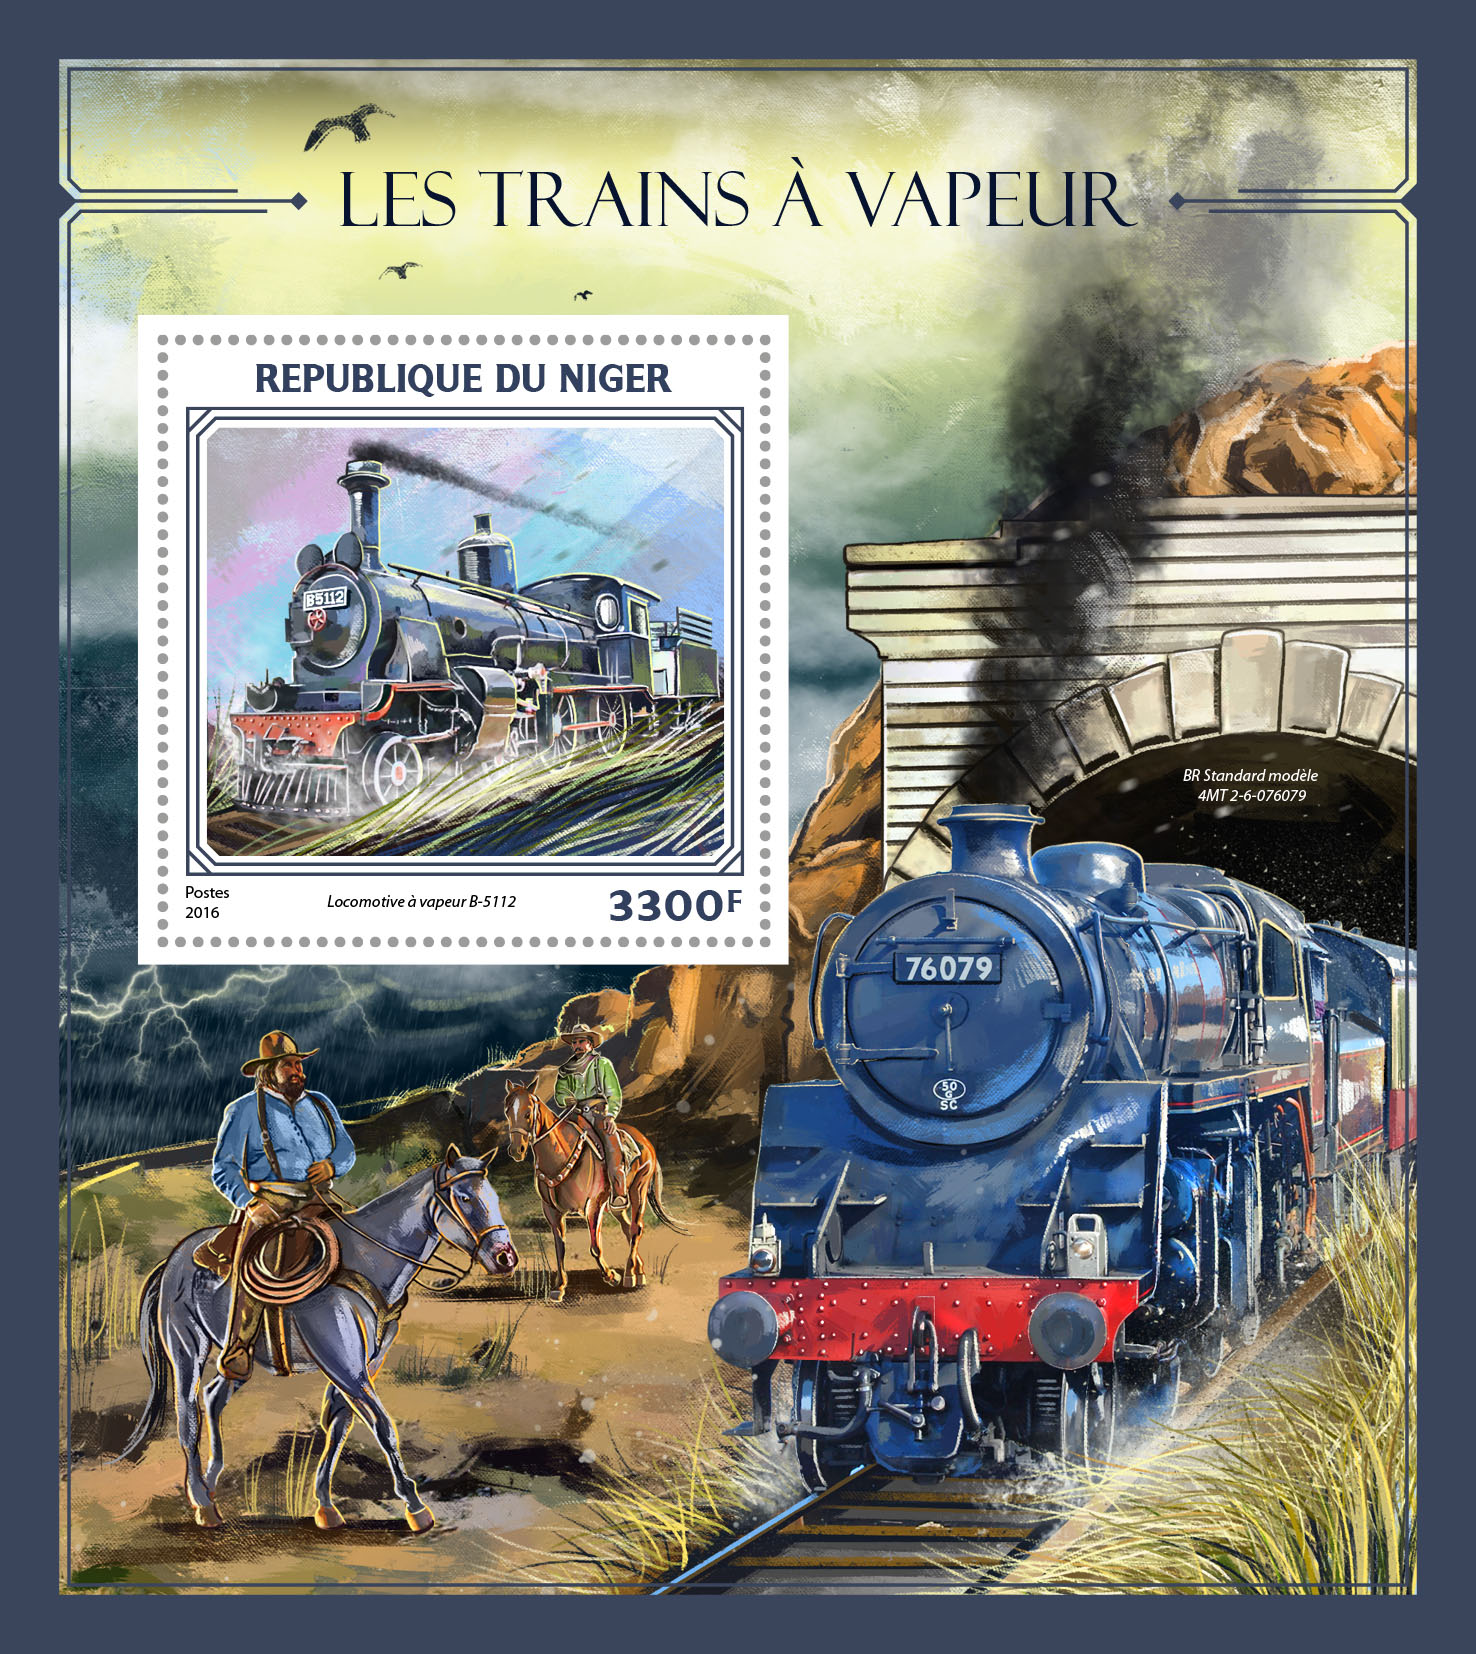 Steam trains - Issue of Niger postage stamps